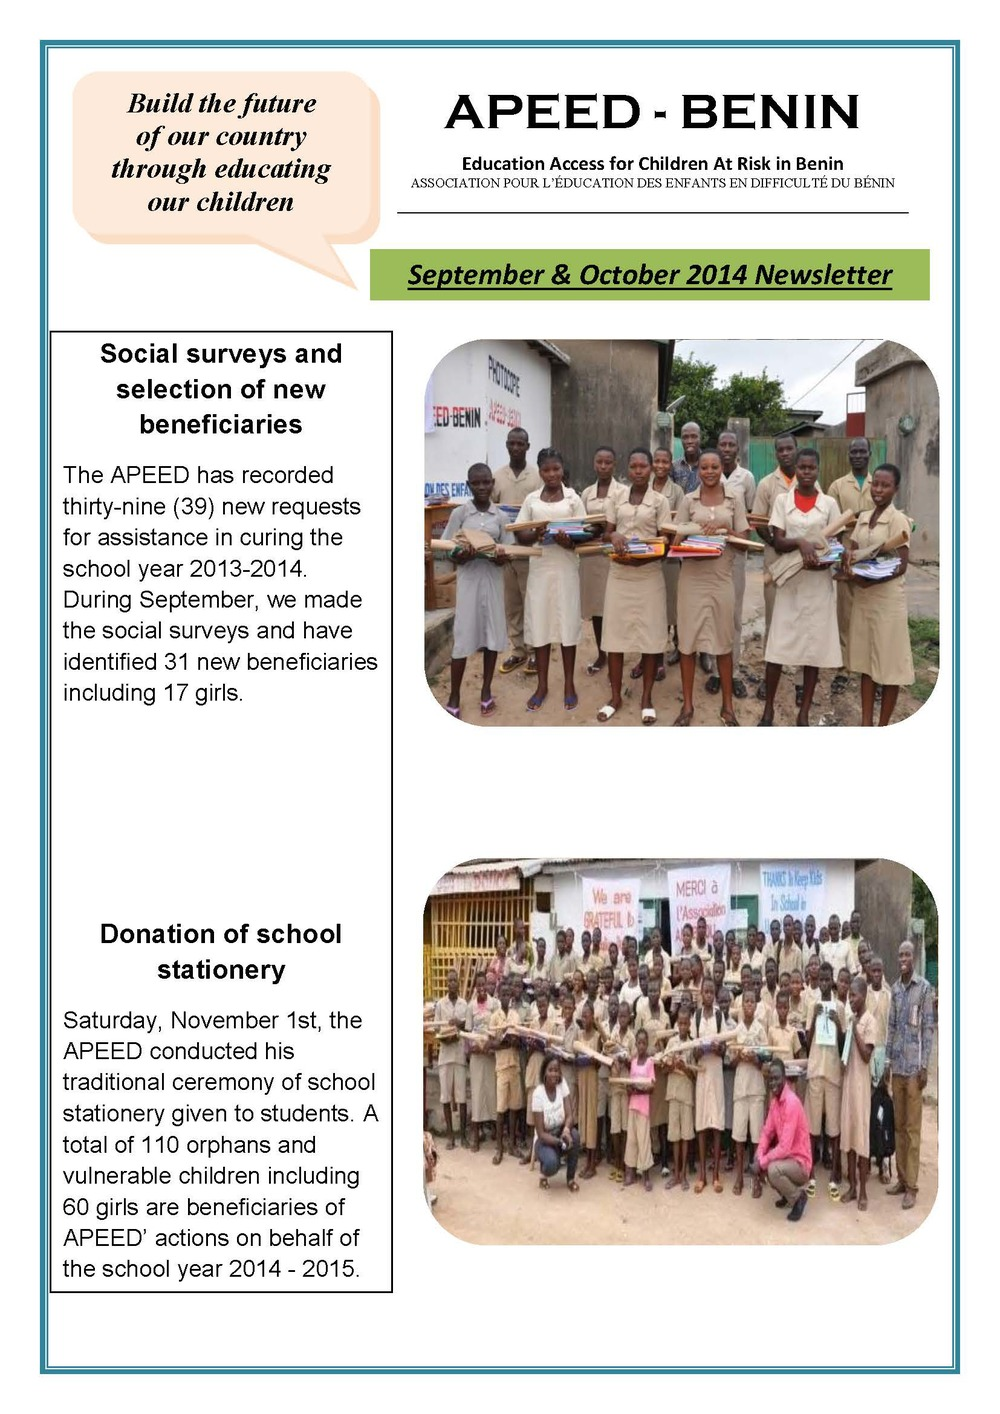 APEED-BENIN September - October Newsletter